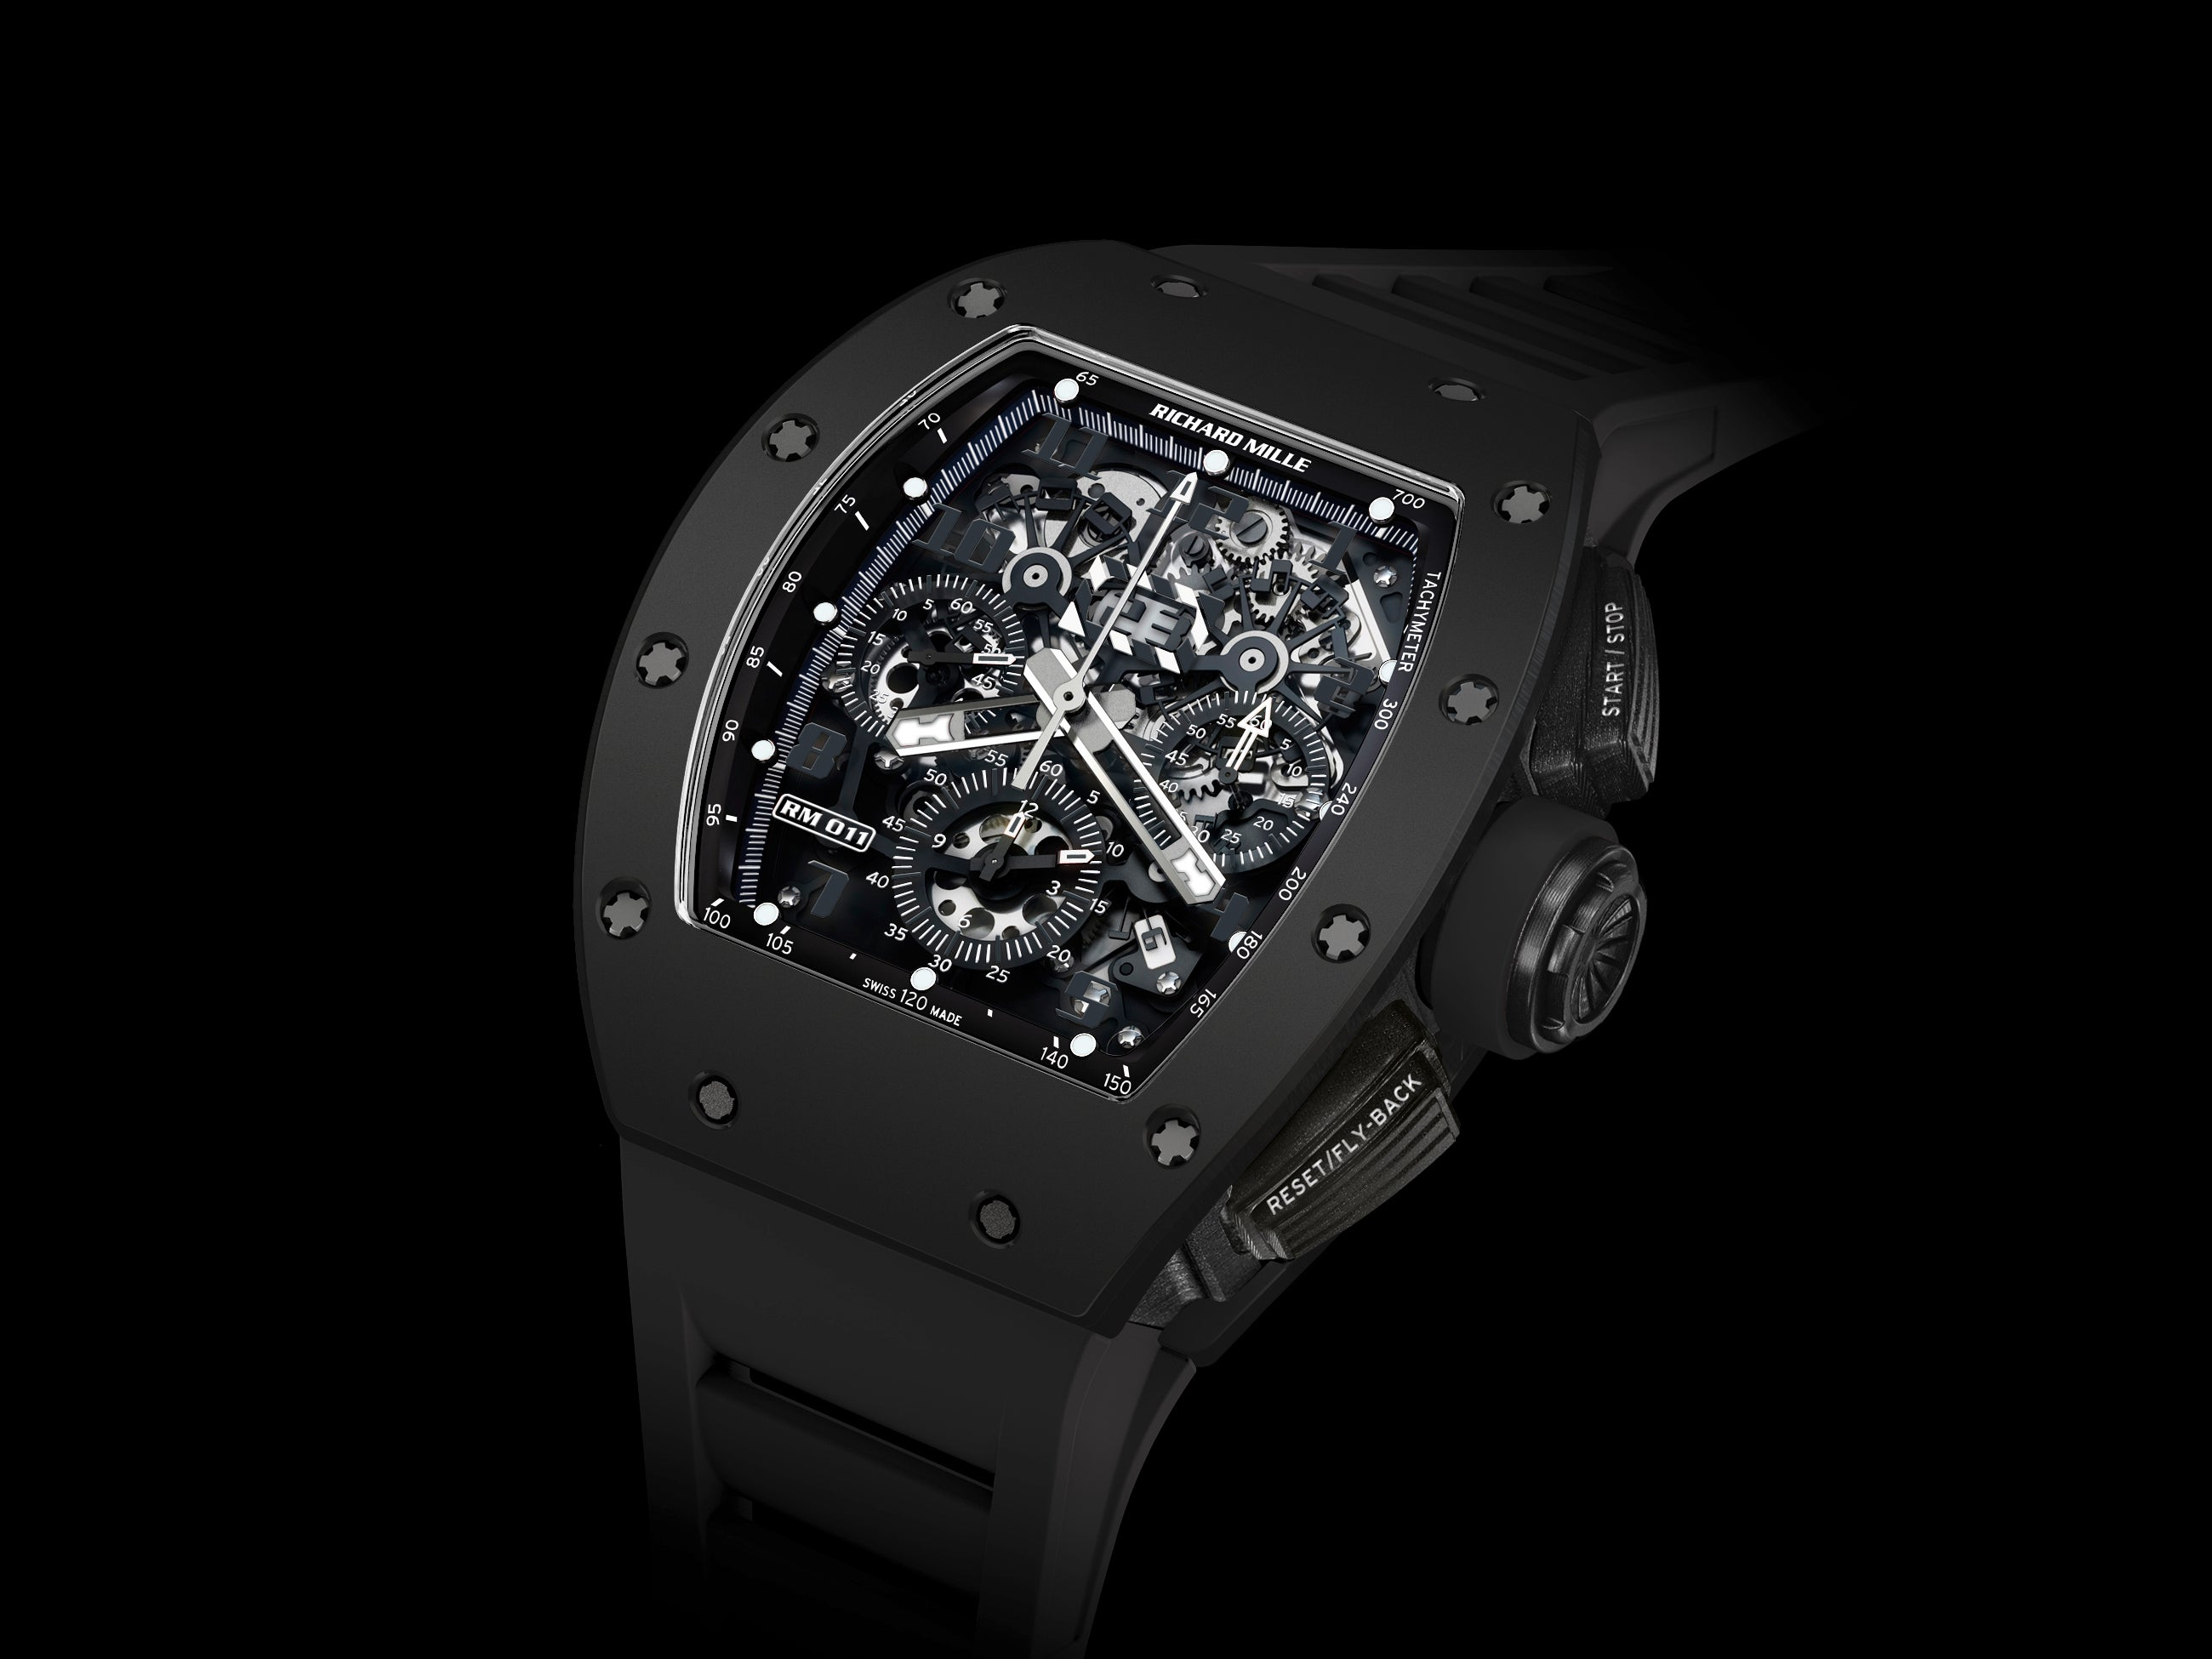 Richard Mille Introduces The Rm 011 Automatic Flyback